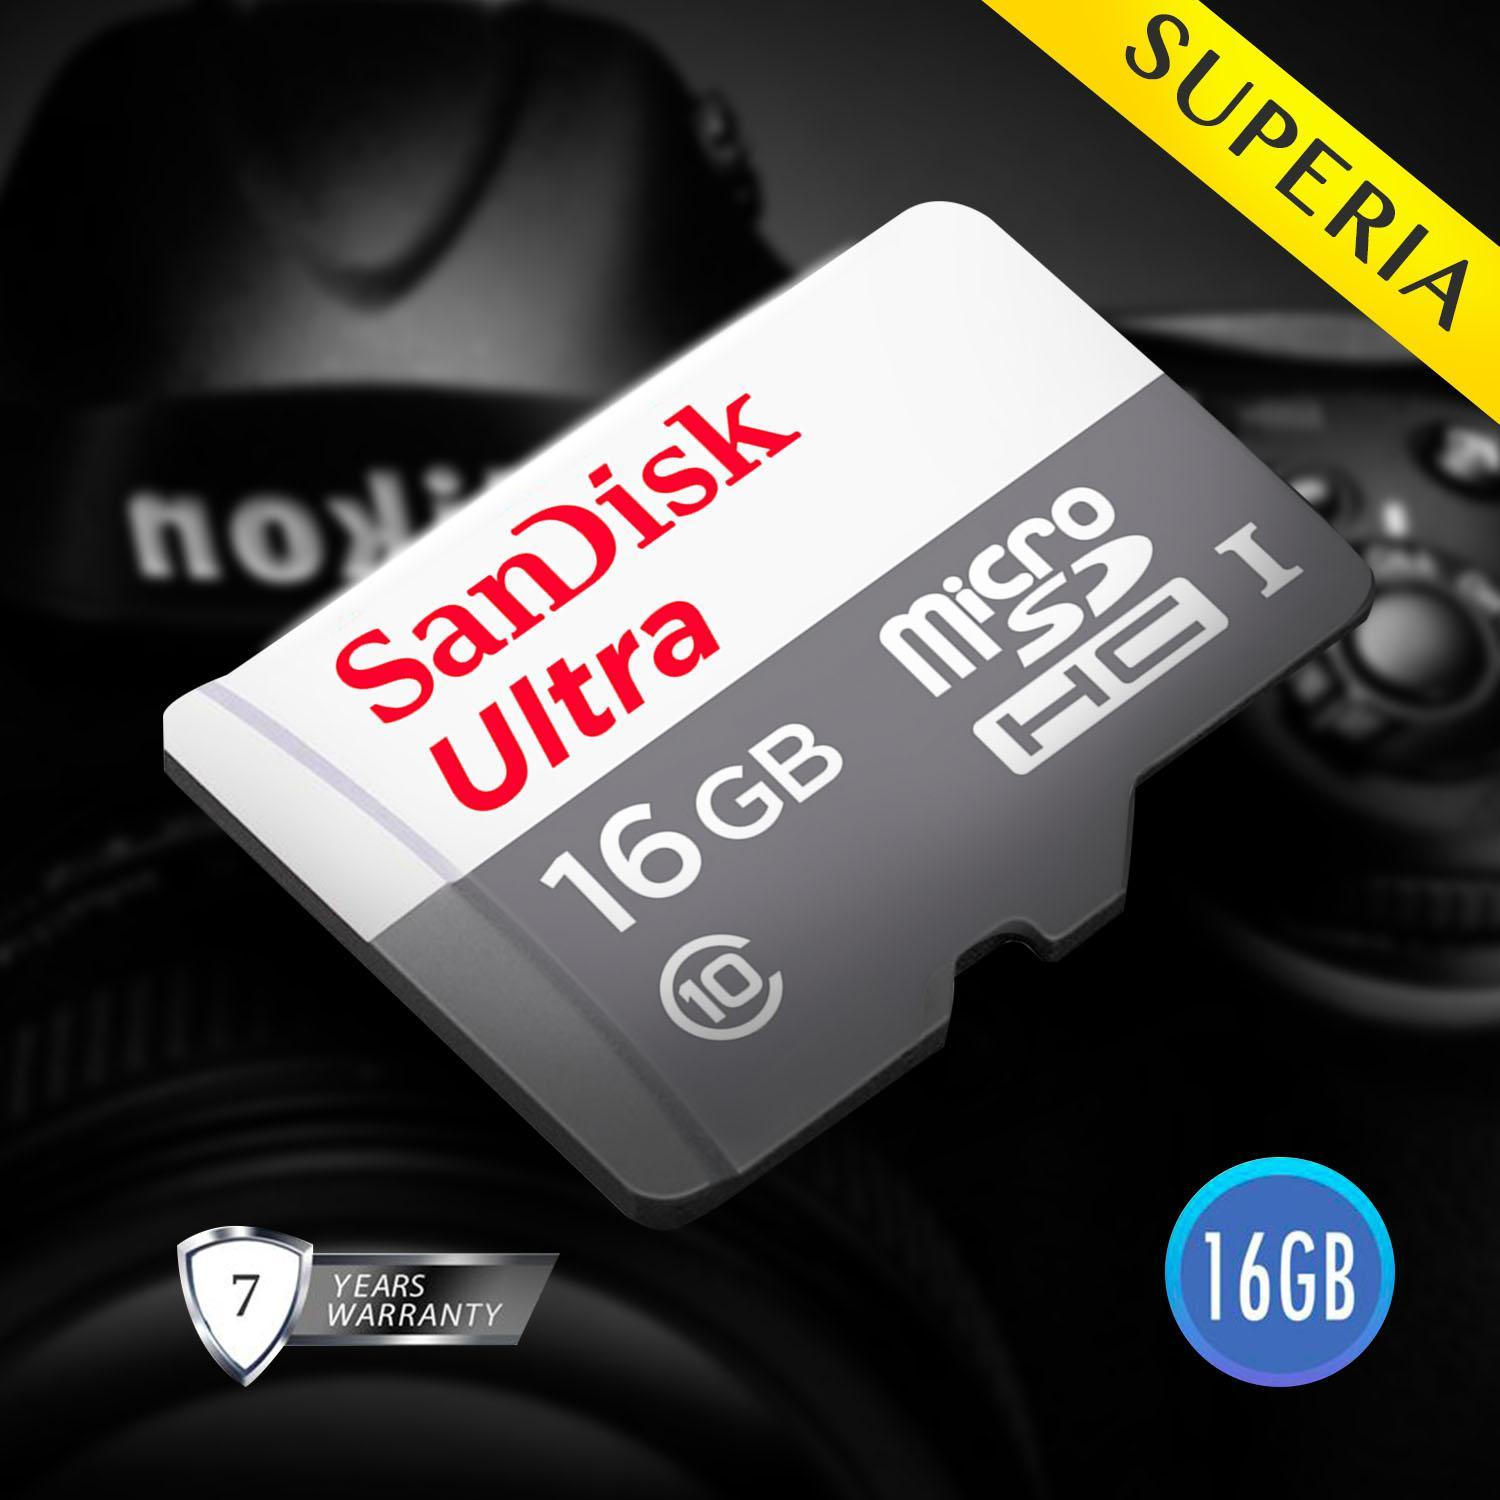 Buy Sell Cheapest New R4i Sdhc Best Quality Product Deals Sandisk Ultra Micro 80mb S Class 10 16gb Sd Card Uhs I Memory Compatible Car